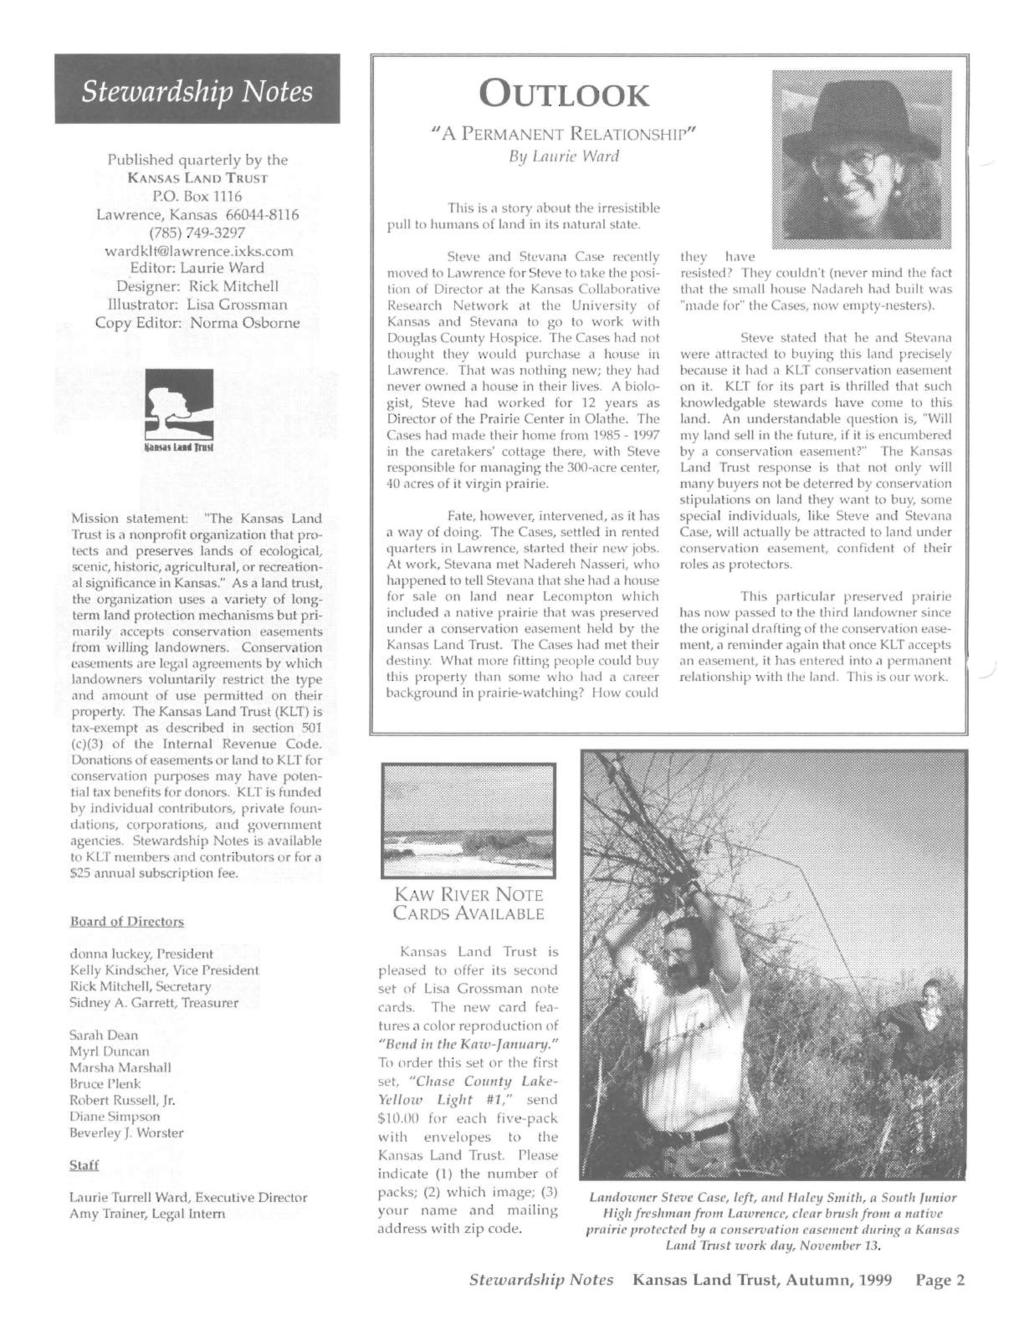 I Stezvardship ~otes Published quarterly by the KANSAS LAND TRUST P.O. Box 1116 Lawrence, Kansas 66044-8116 (785) 749-3297 wardklt lawrence.ixks.